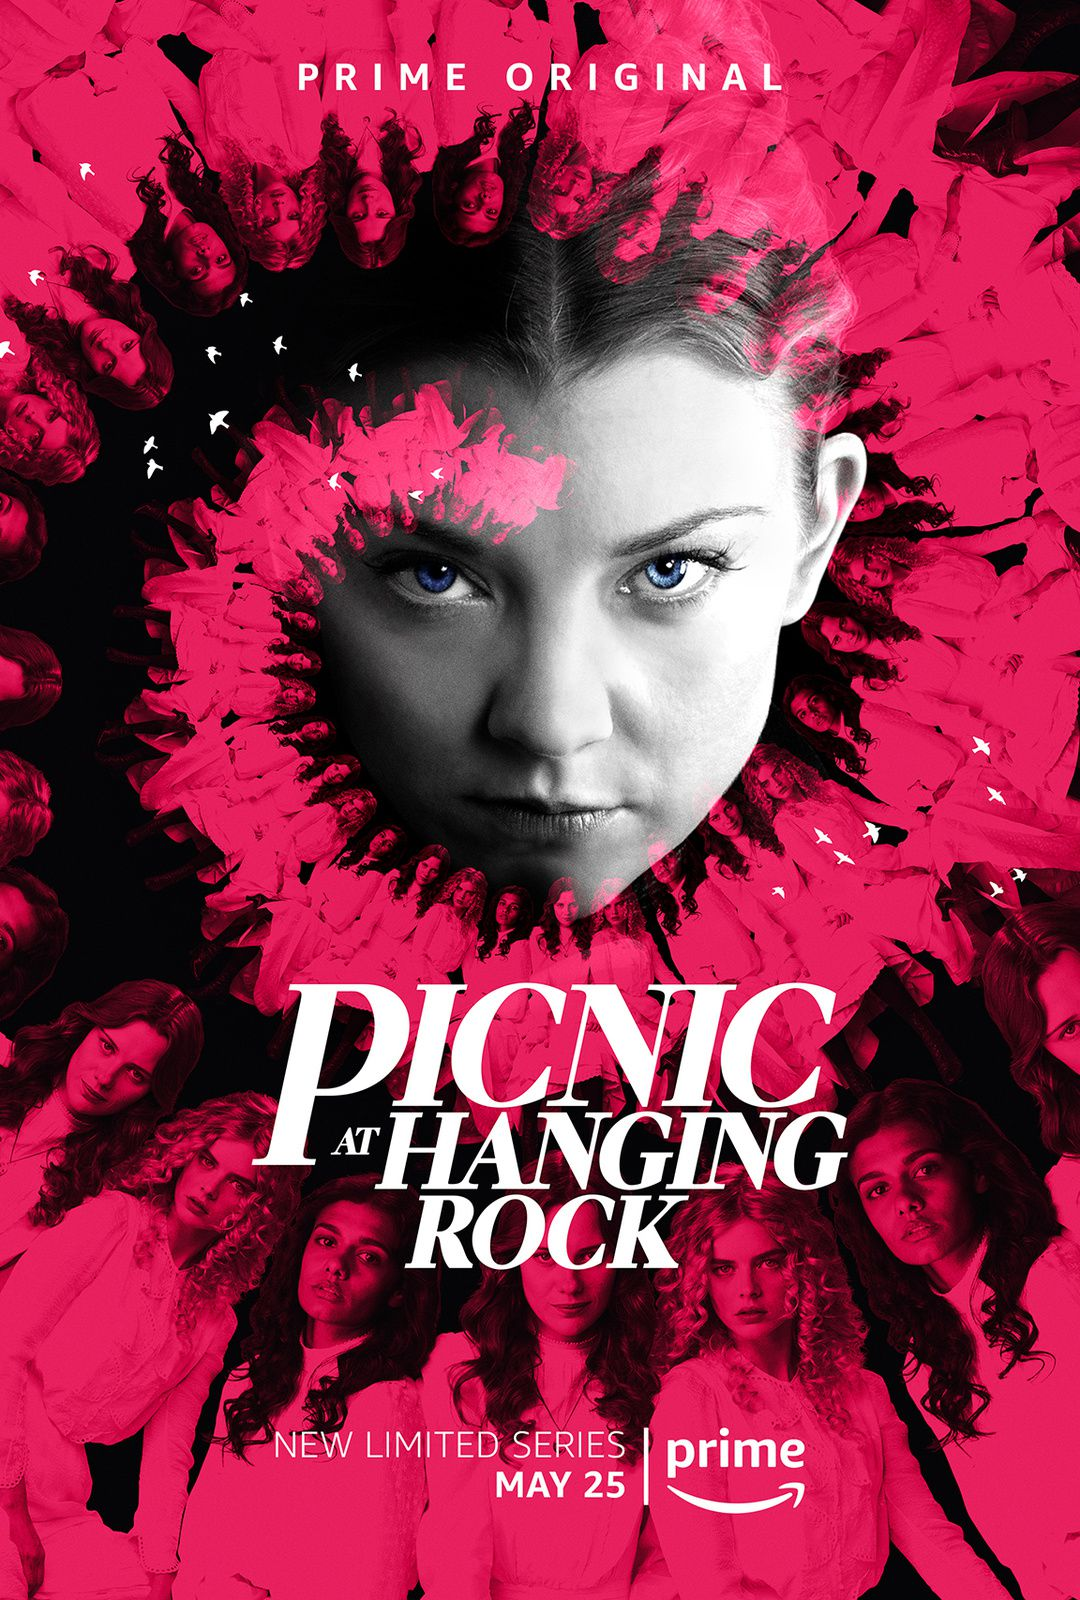 Picnic At Hanging Rock Histoire Vraie : picnic, hanging, histoire, vraie, Bilans, Lurdo, Picnic, Hanging, (2018), TÉLÉPHAGES, ANONYMES